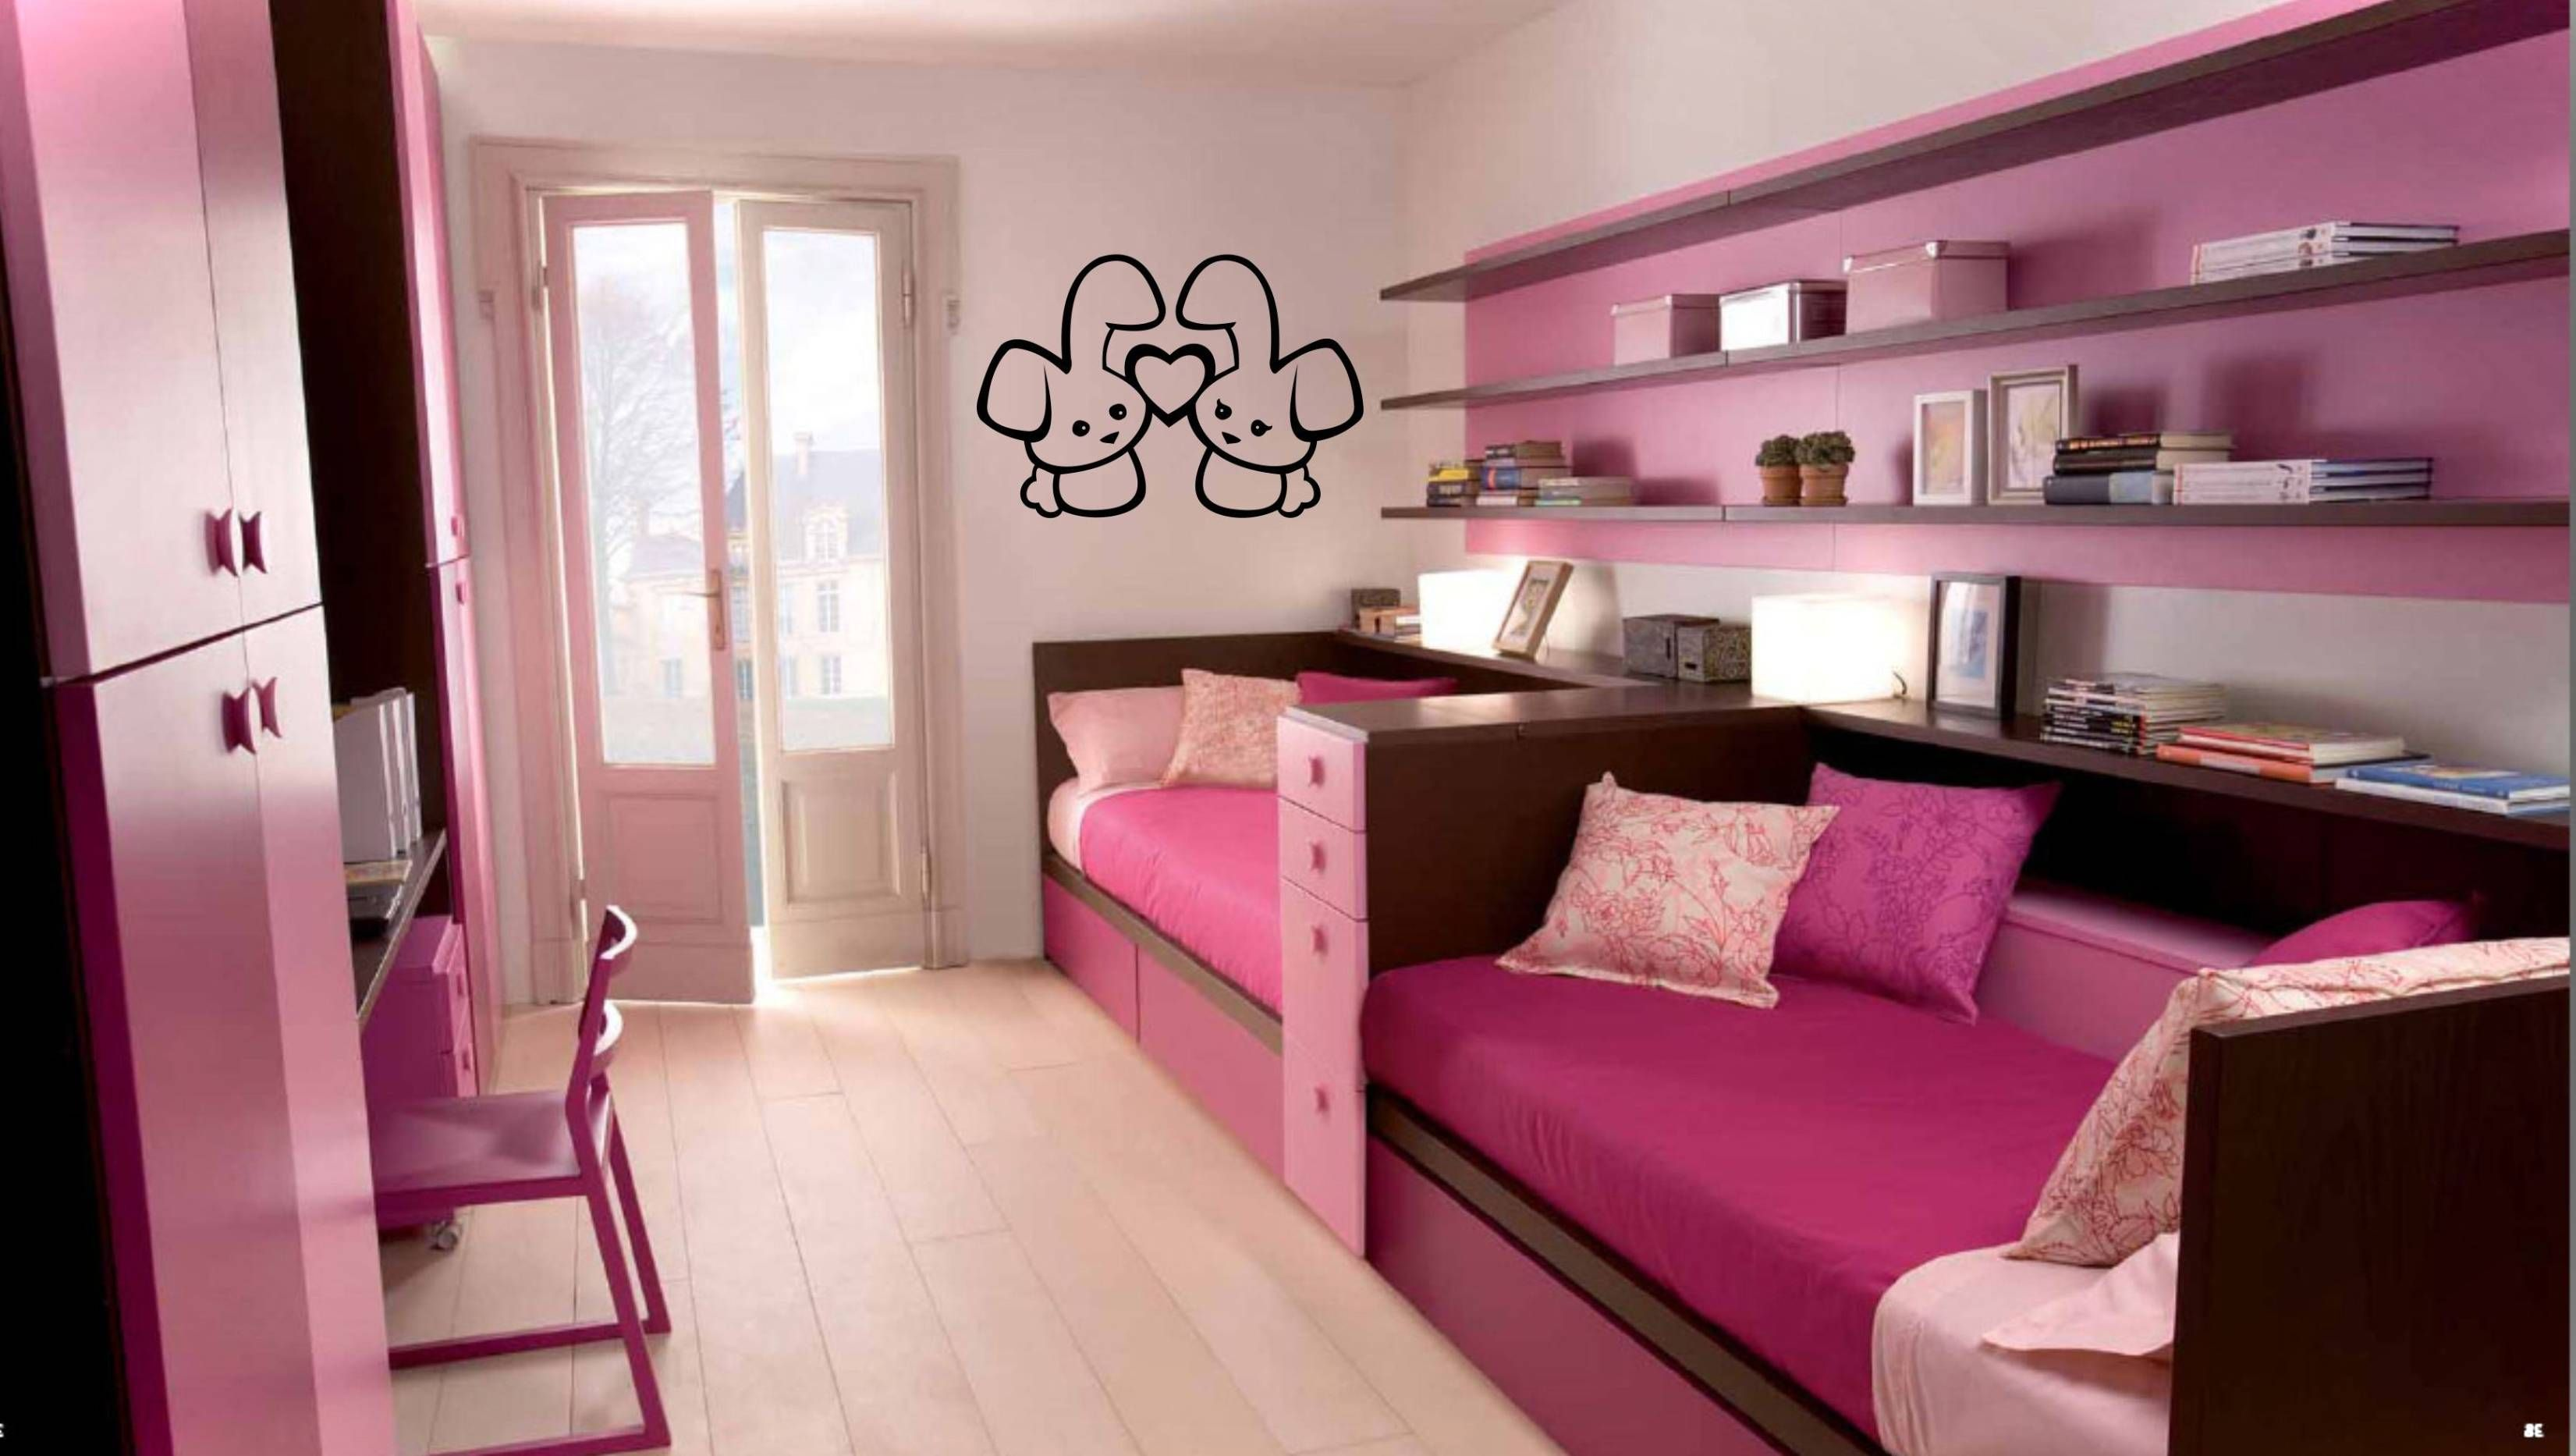 cute little girl bedroom furniture. Wonderful Girls Bedroom Furniture For Teens: Beautiful Wooden Flooring Purple And Violet Color Combination In Baby Furntiure Sets Finished With Pink Cute Little Girl E